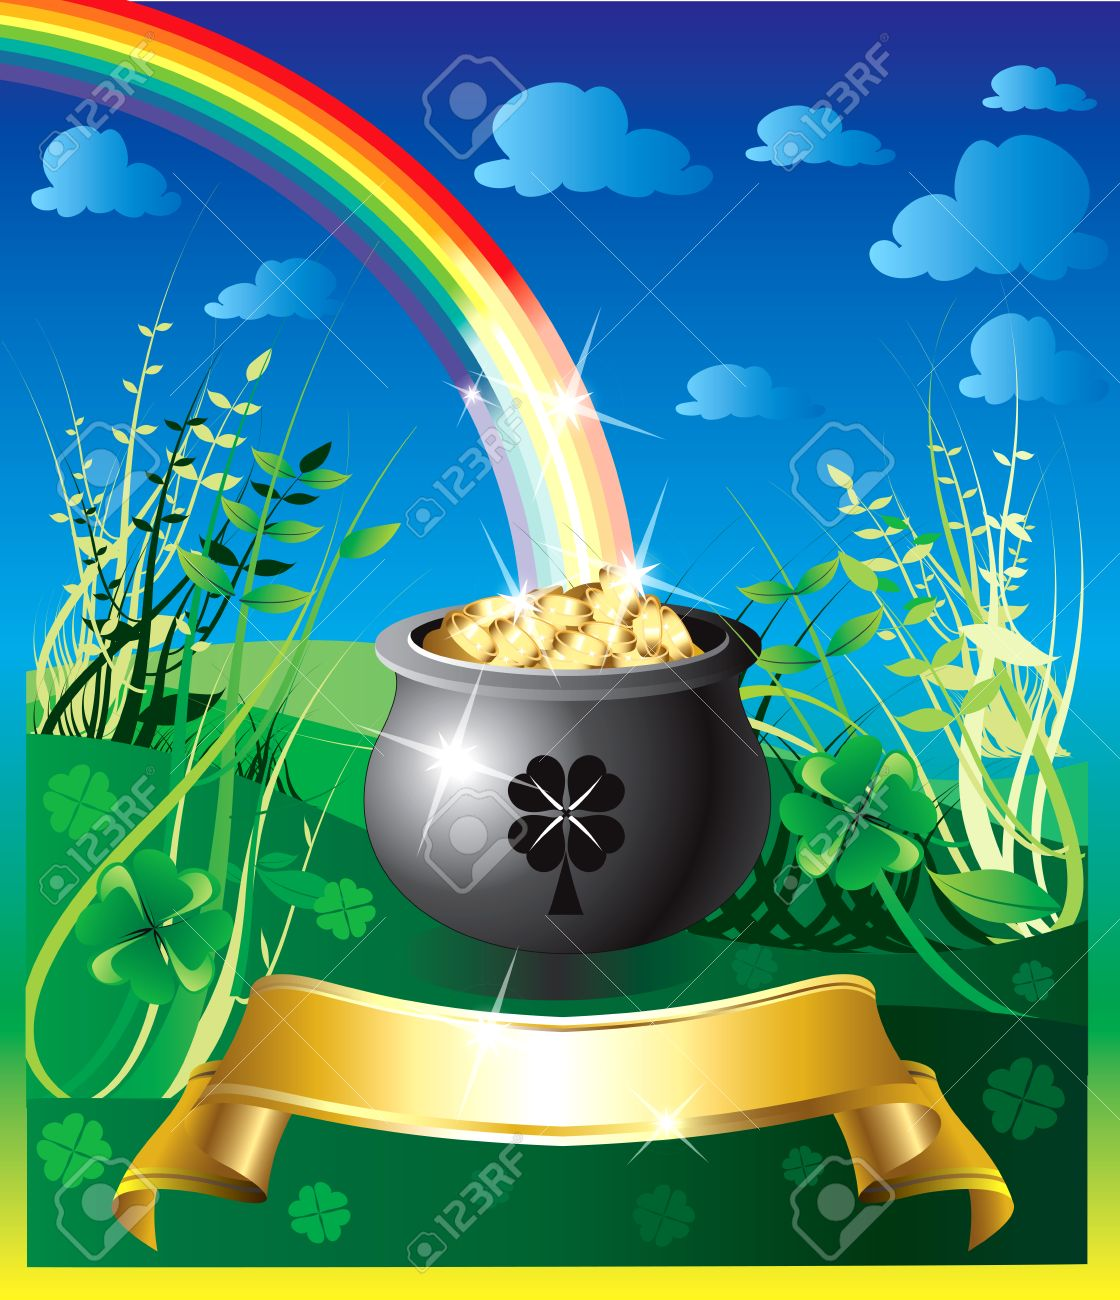 Illustration of pot of gold rainbow with a colorful background and a place for text or imagery. Stock Vector - 6472131